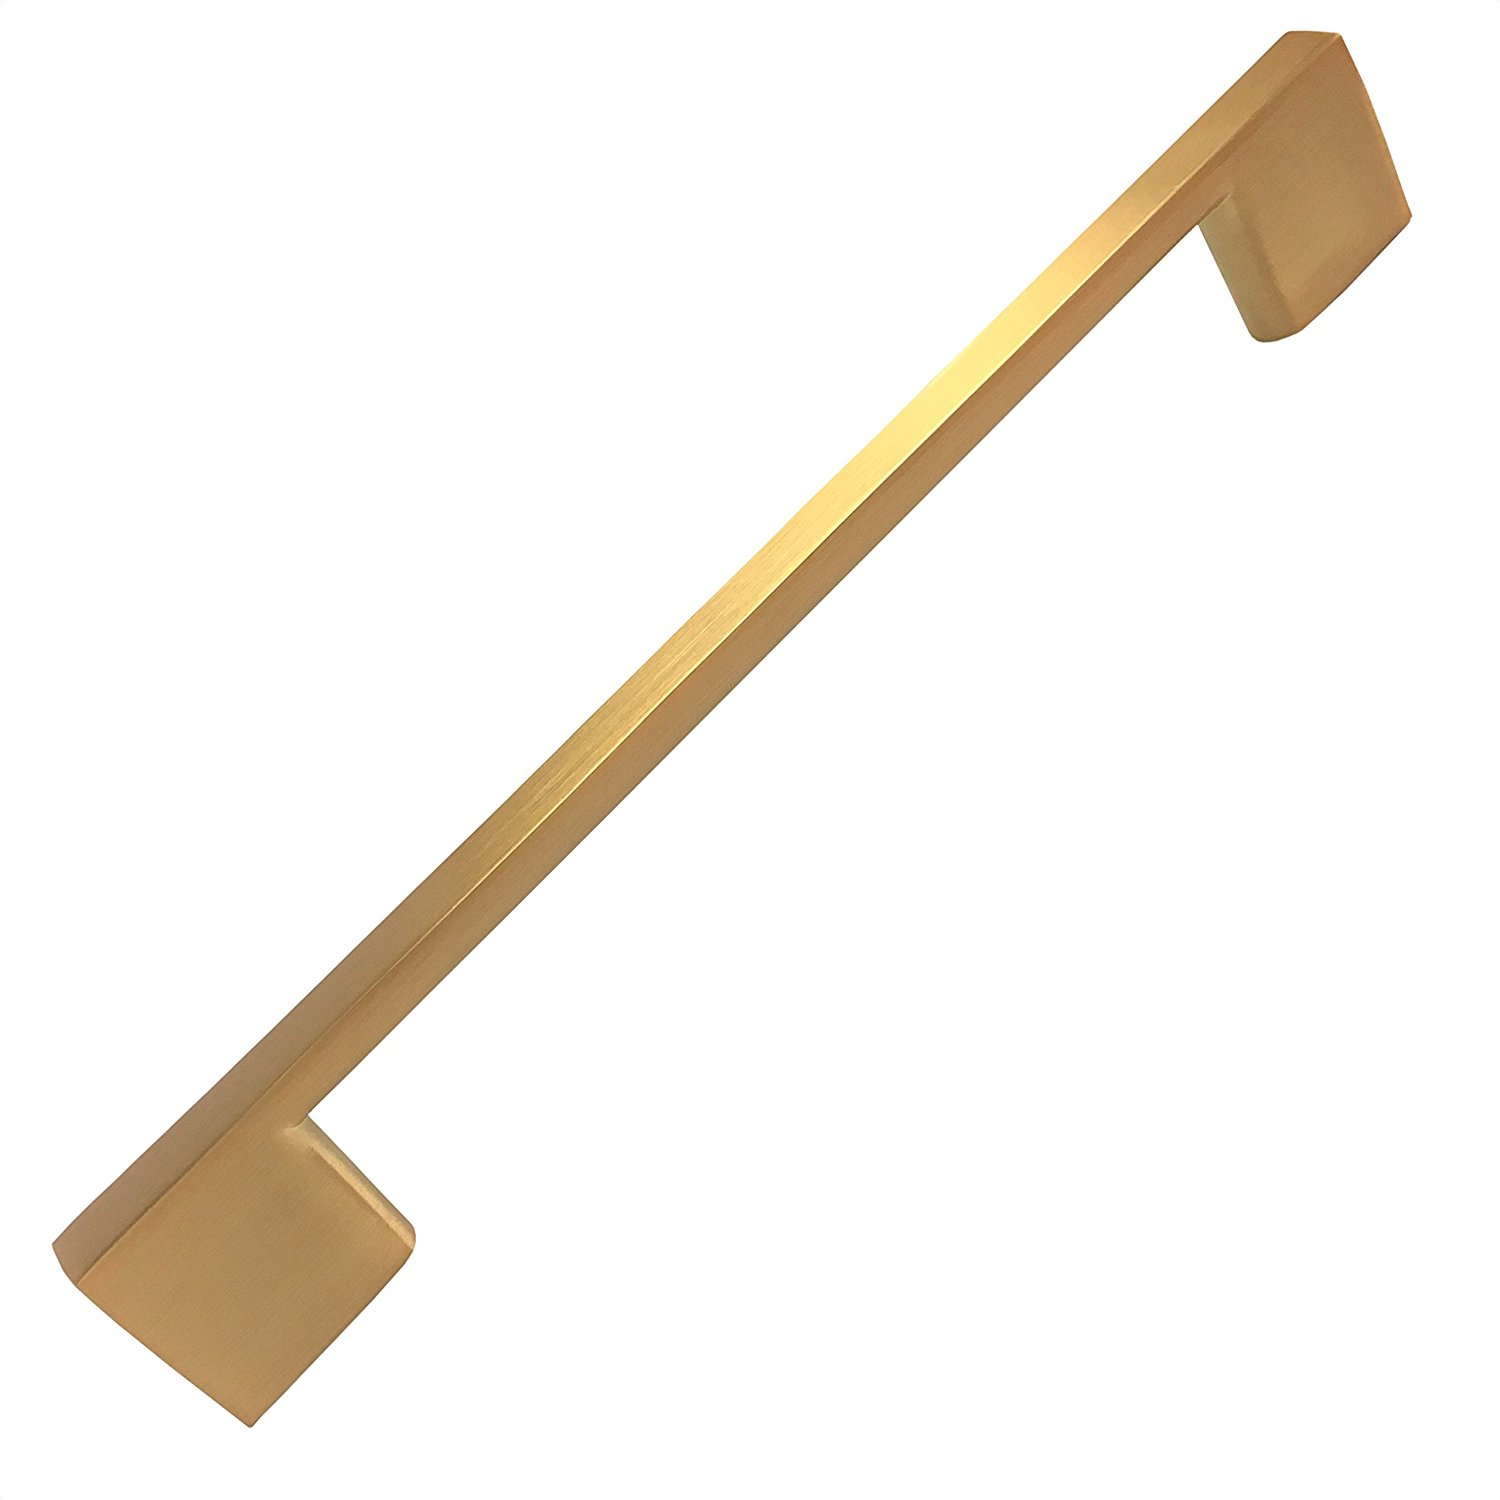 Southern Hills Brushed Satin Gold Cabinet Pulls, 8.75 Inch Screw Spacing, 10 Inch Handle Length ,Drawer Pulls, Pack of 5, Modern Cabinet Hardware, Satin Brass Cabinet Pulls SH3229-224-GLD-5